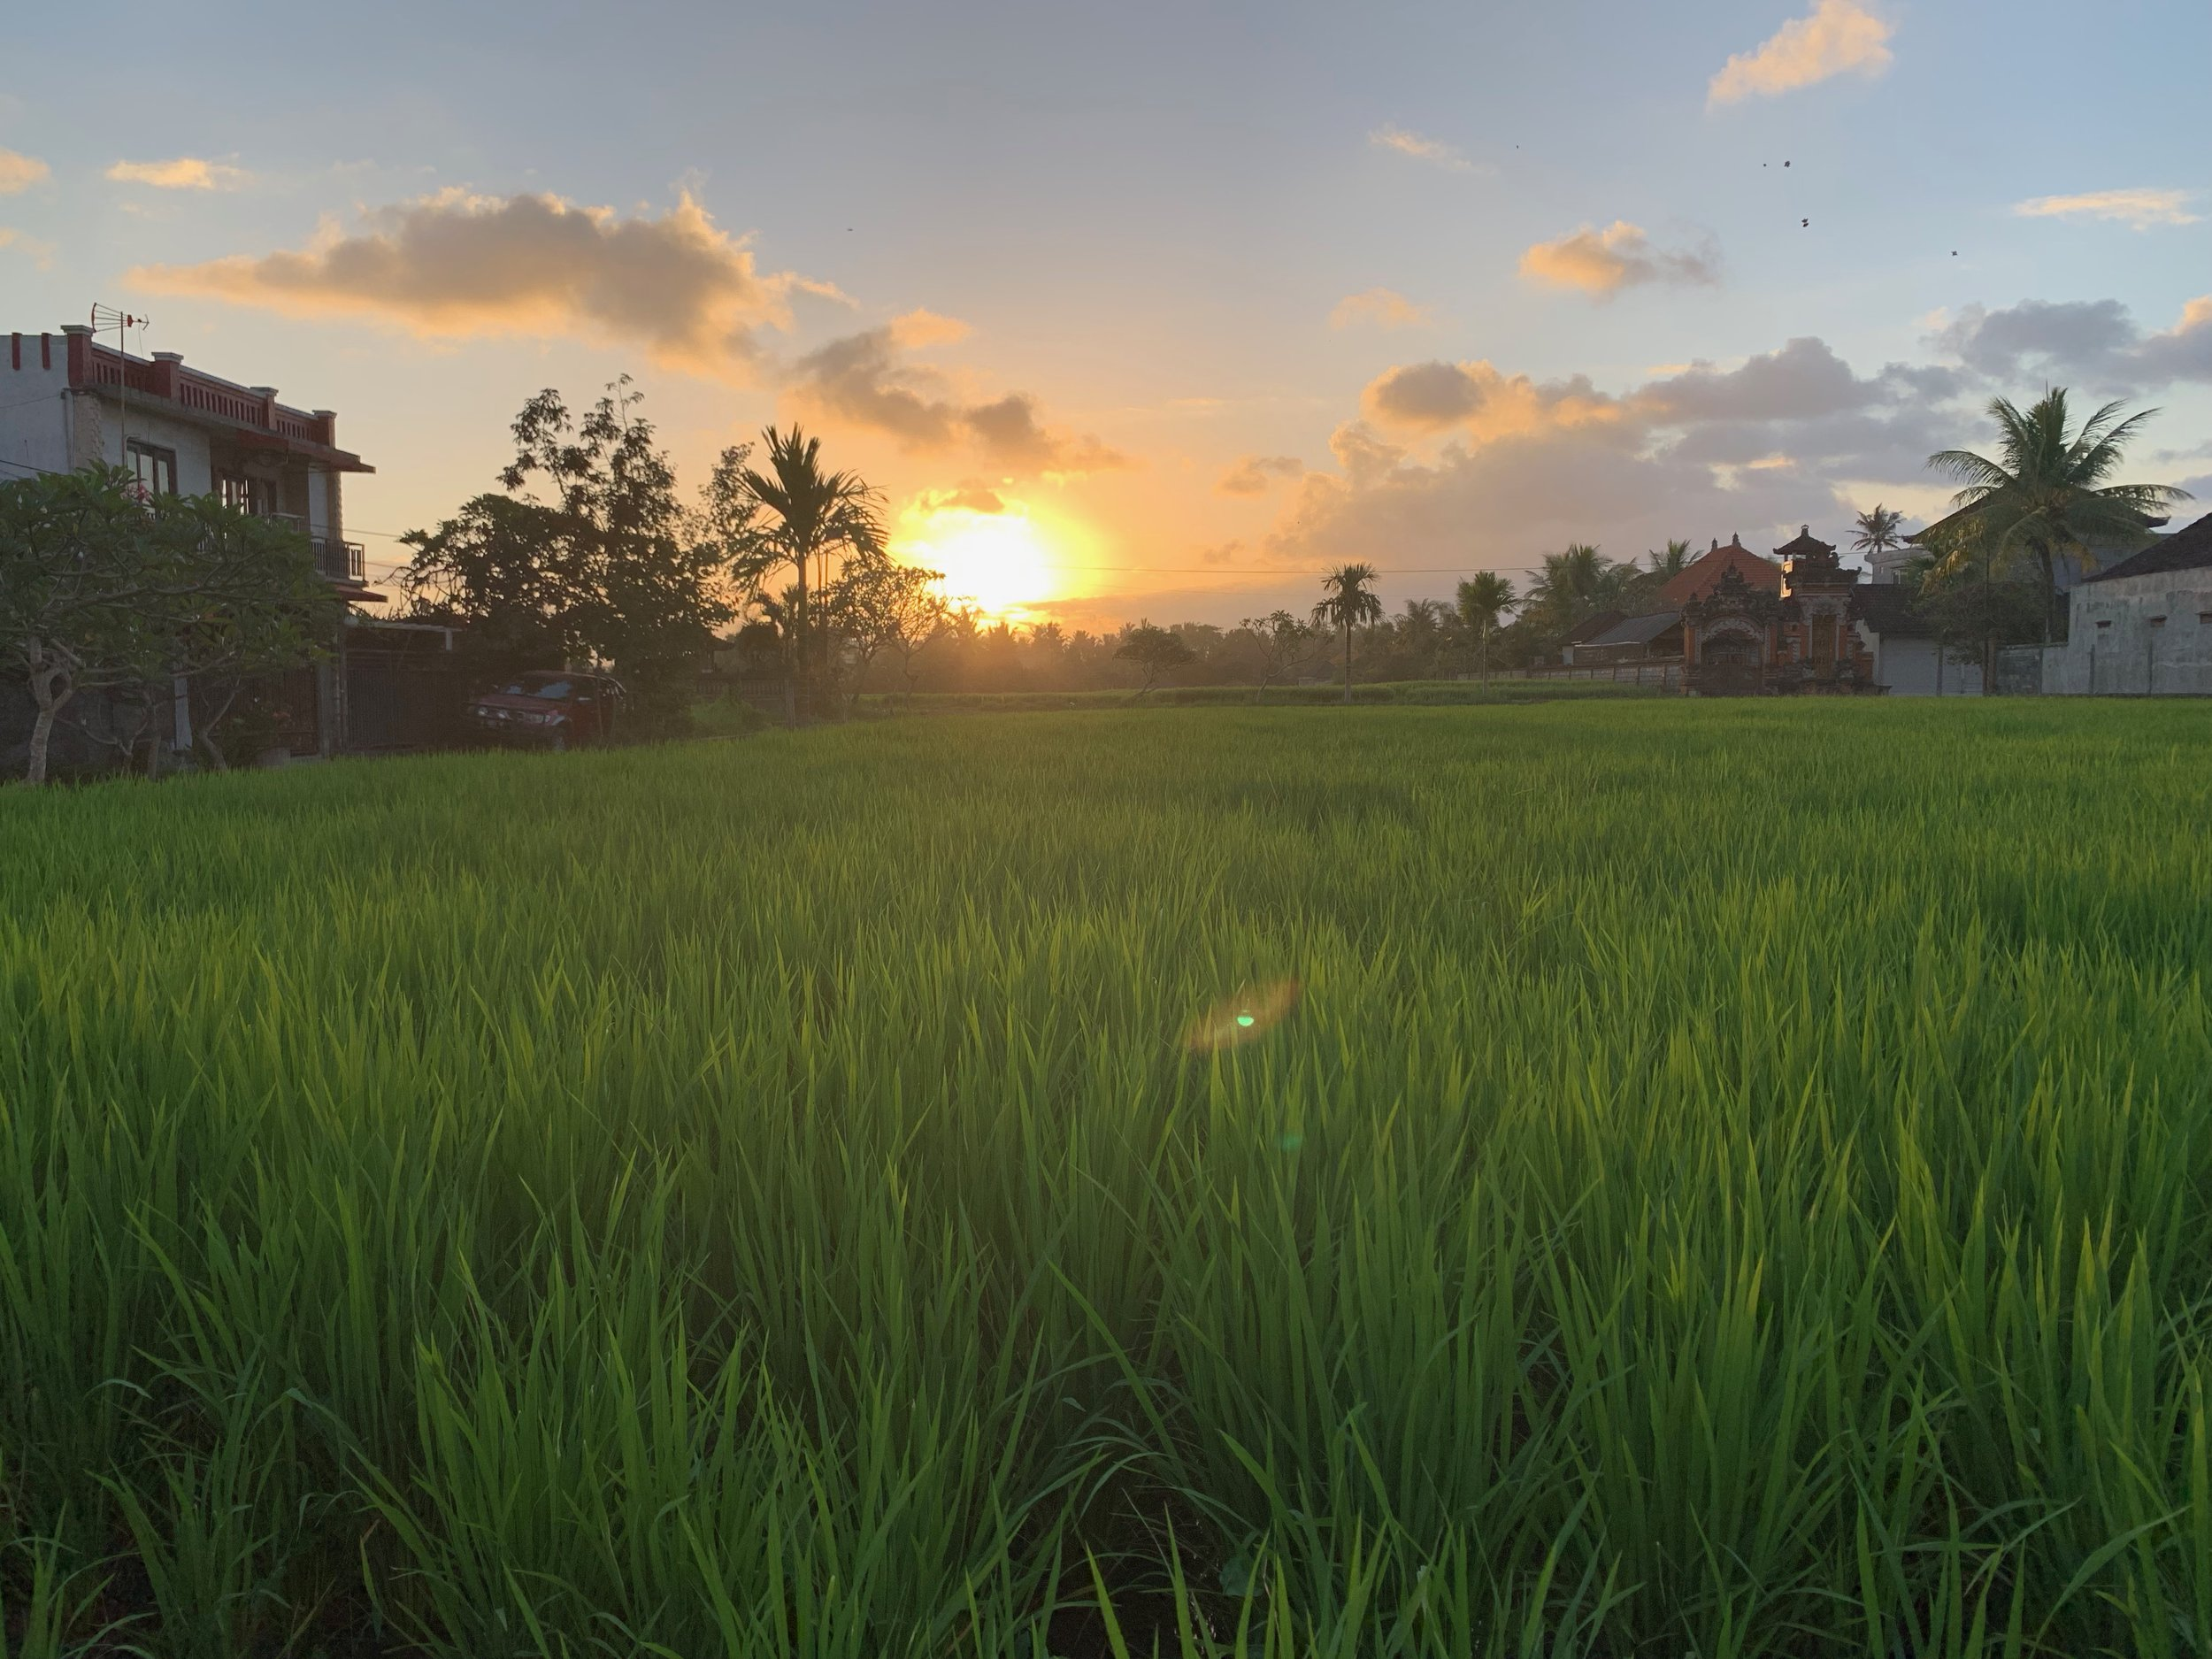 Insiders Guide to Ubud - www.letsregale.com 25.jpeg